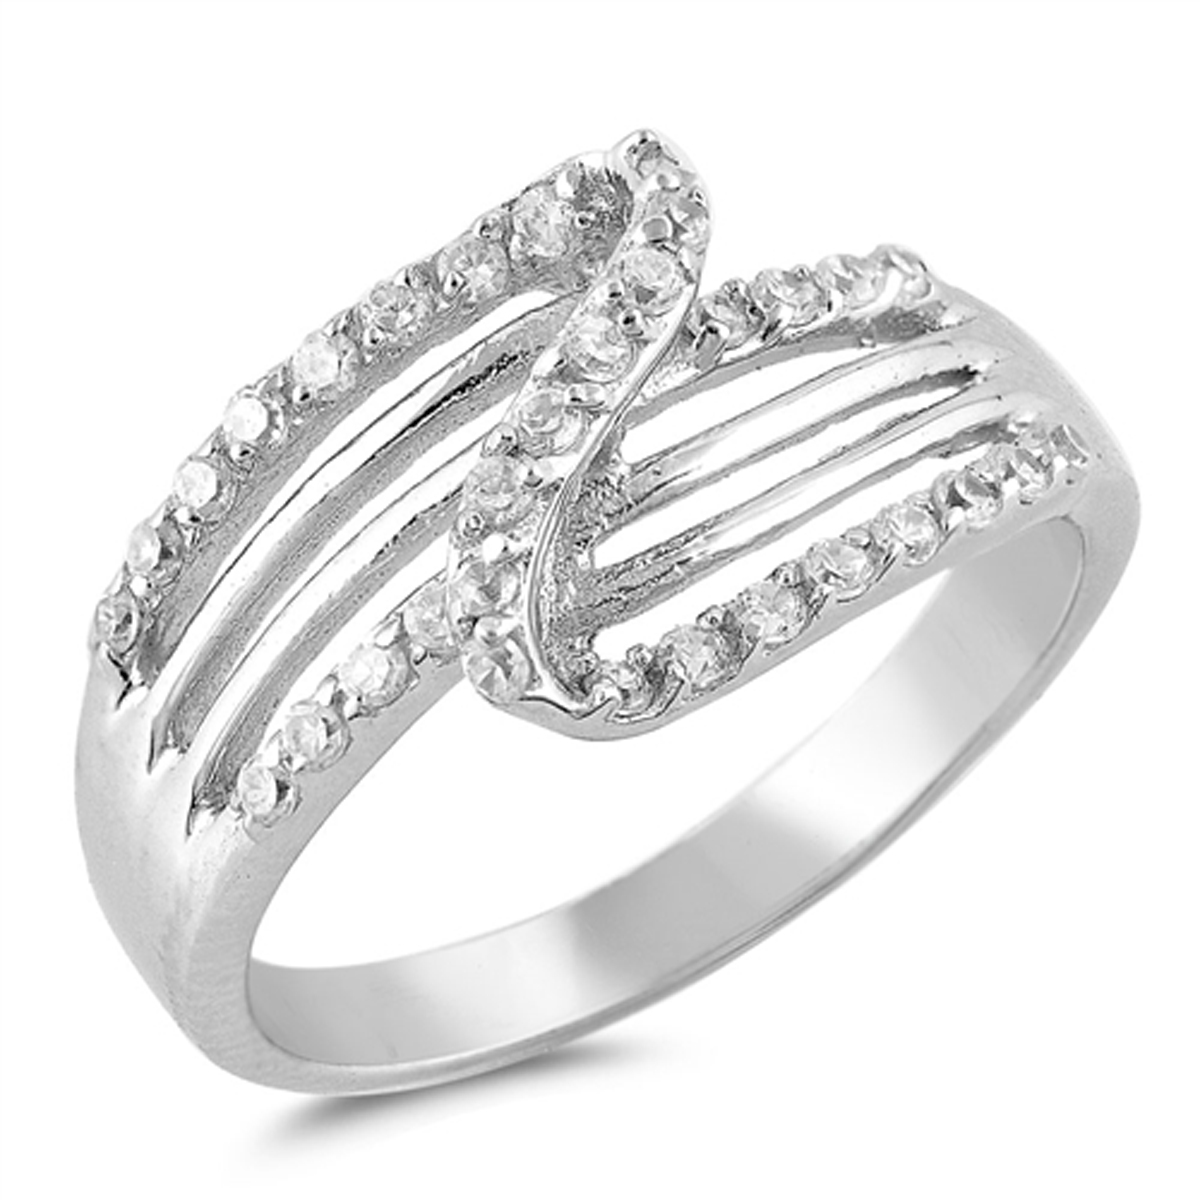 Sterling Silver Women's Flawless Colorless Cubic Zirconia Micro Pave Wedding Ring (Sizes 5-9) (Ring Size 9)